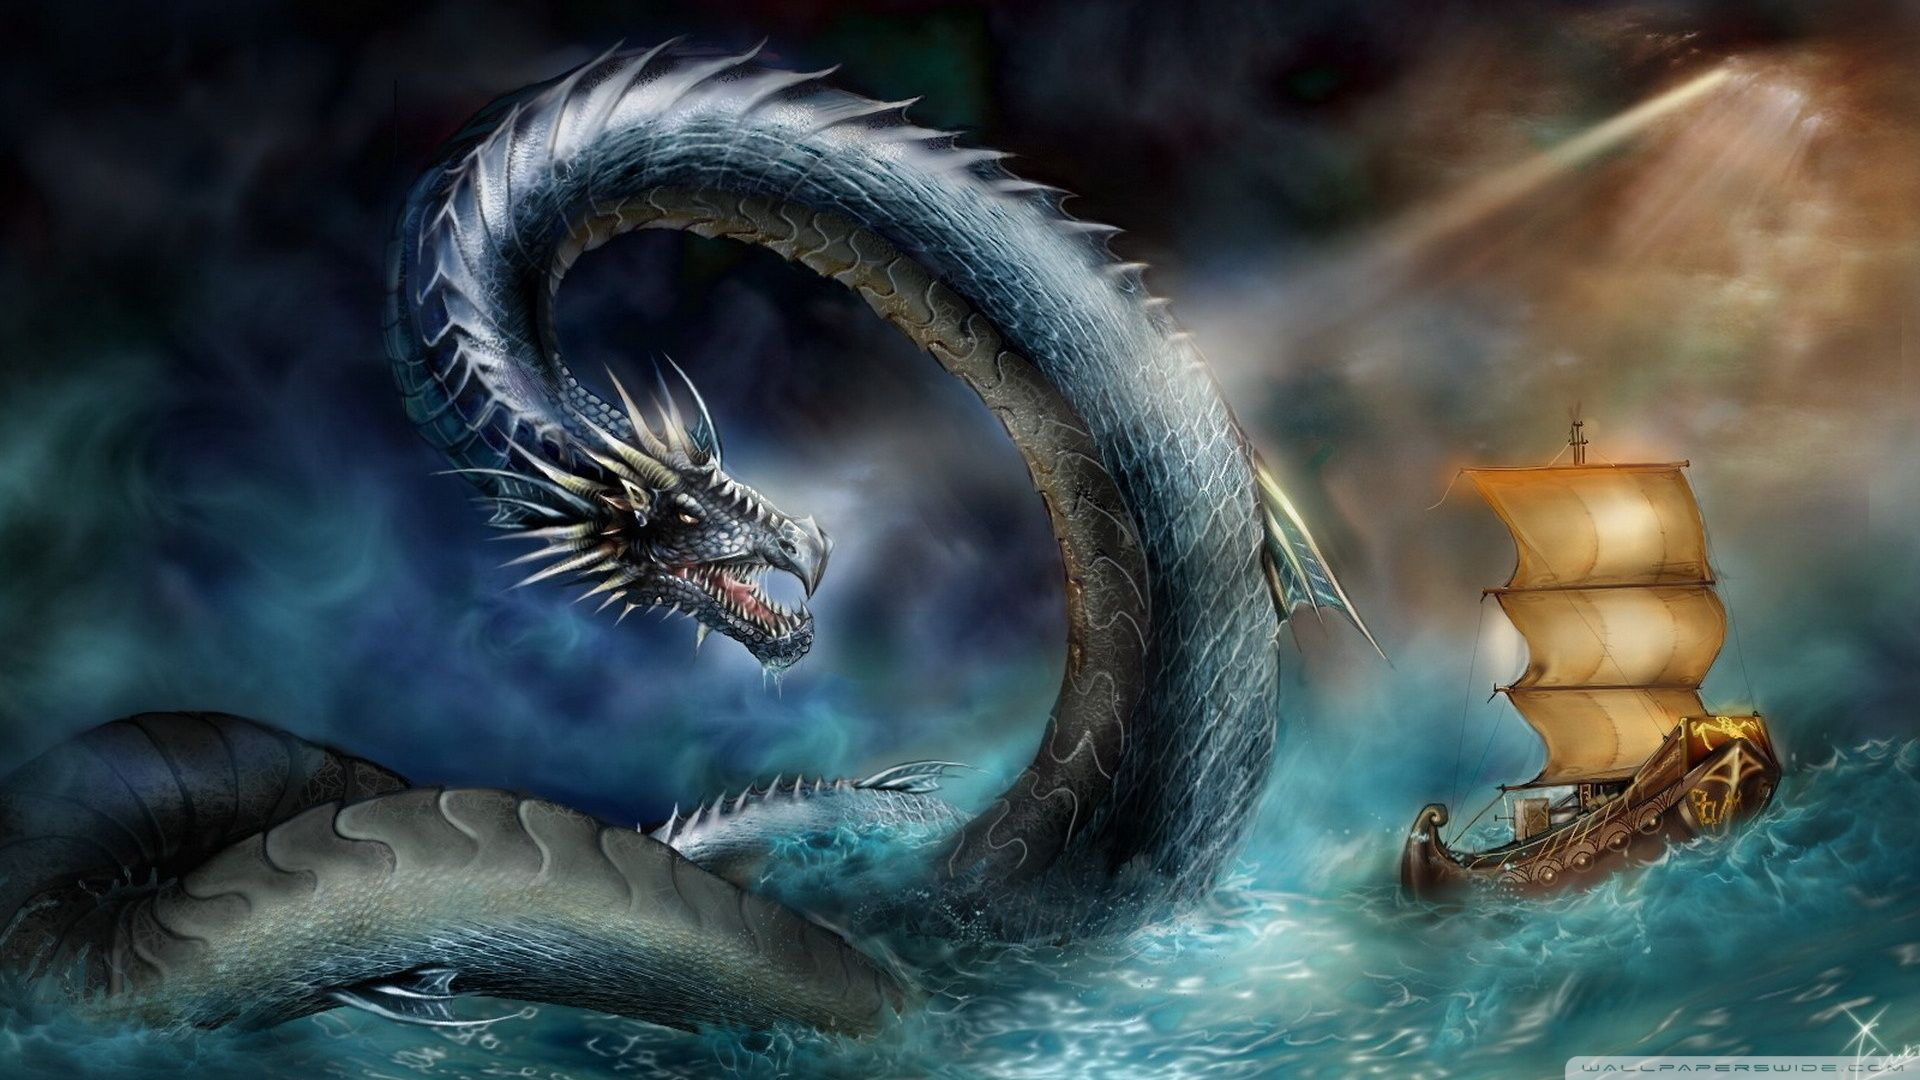 dragon d android wallpapers amazing wallpaperz | 3d wallpapers